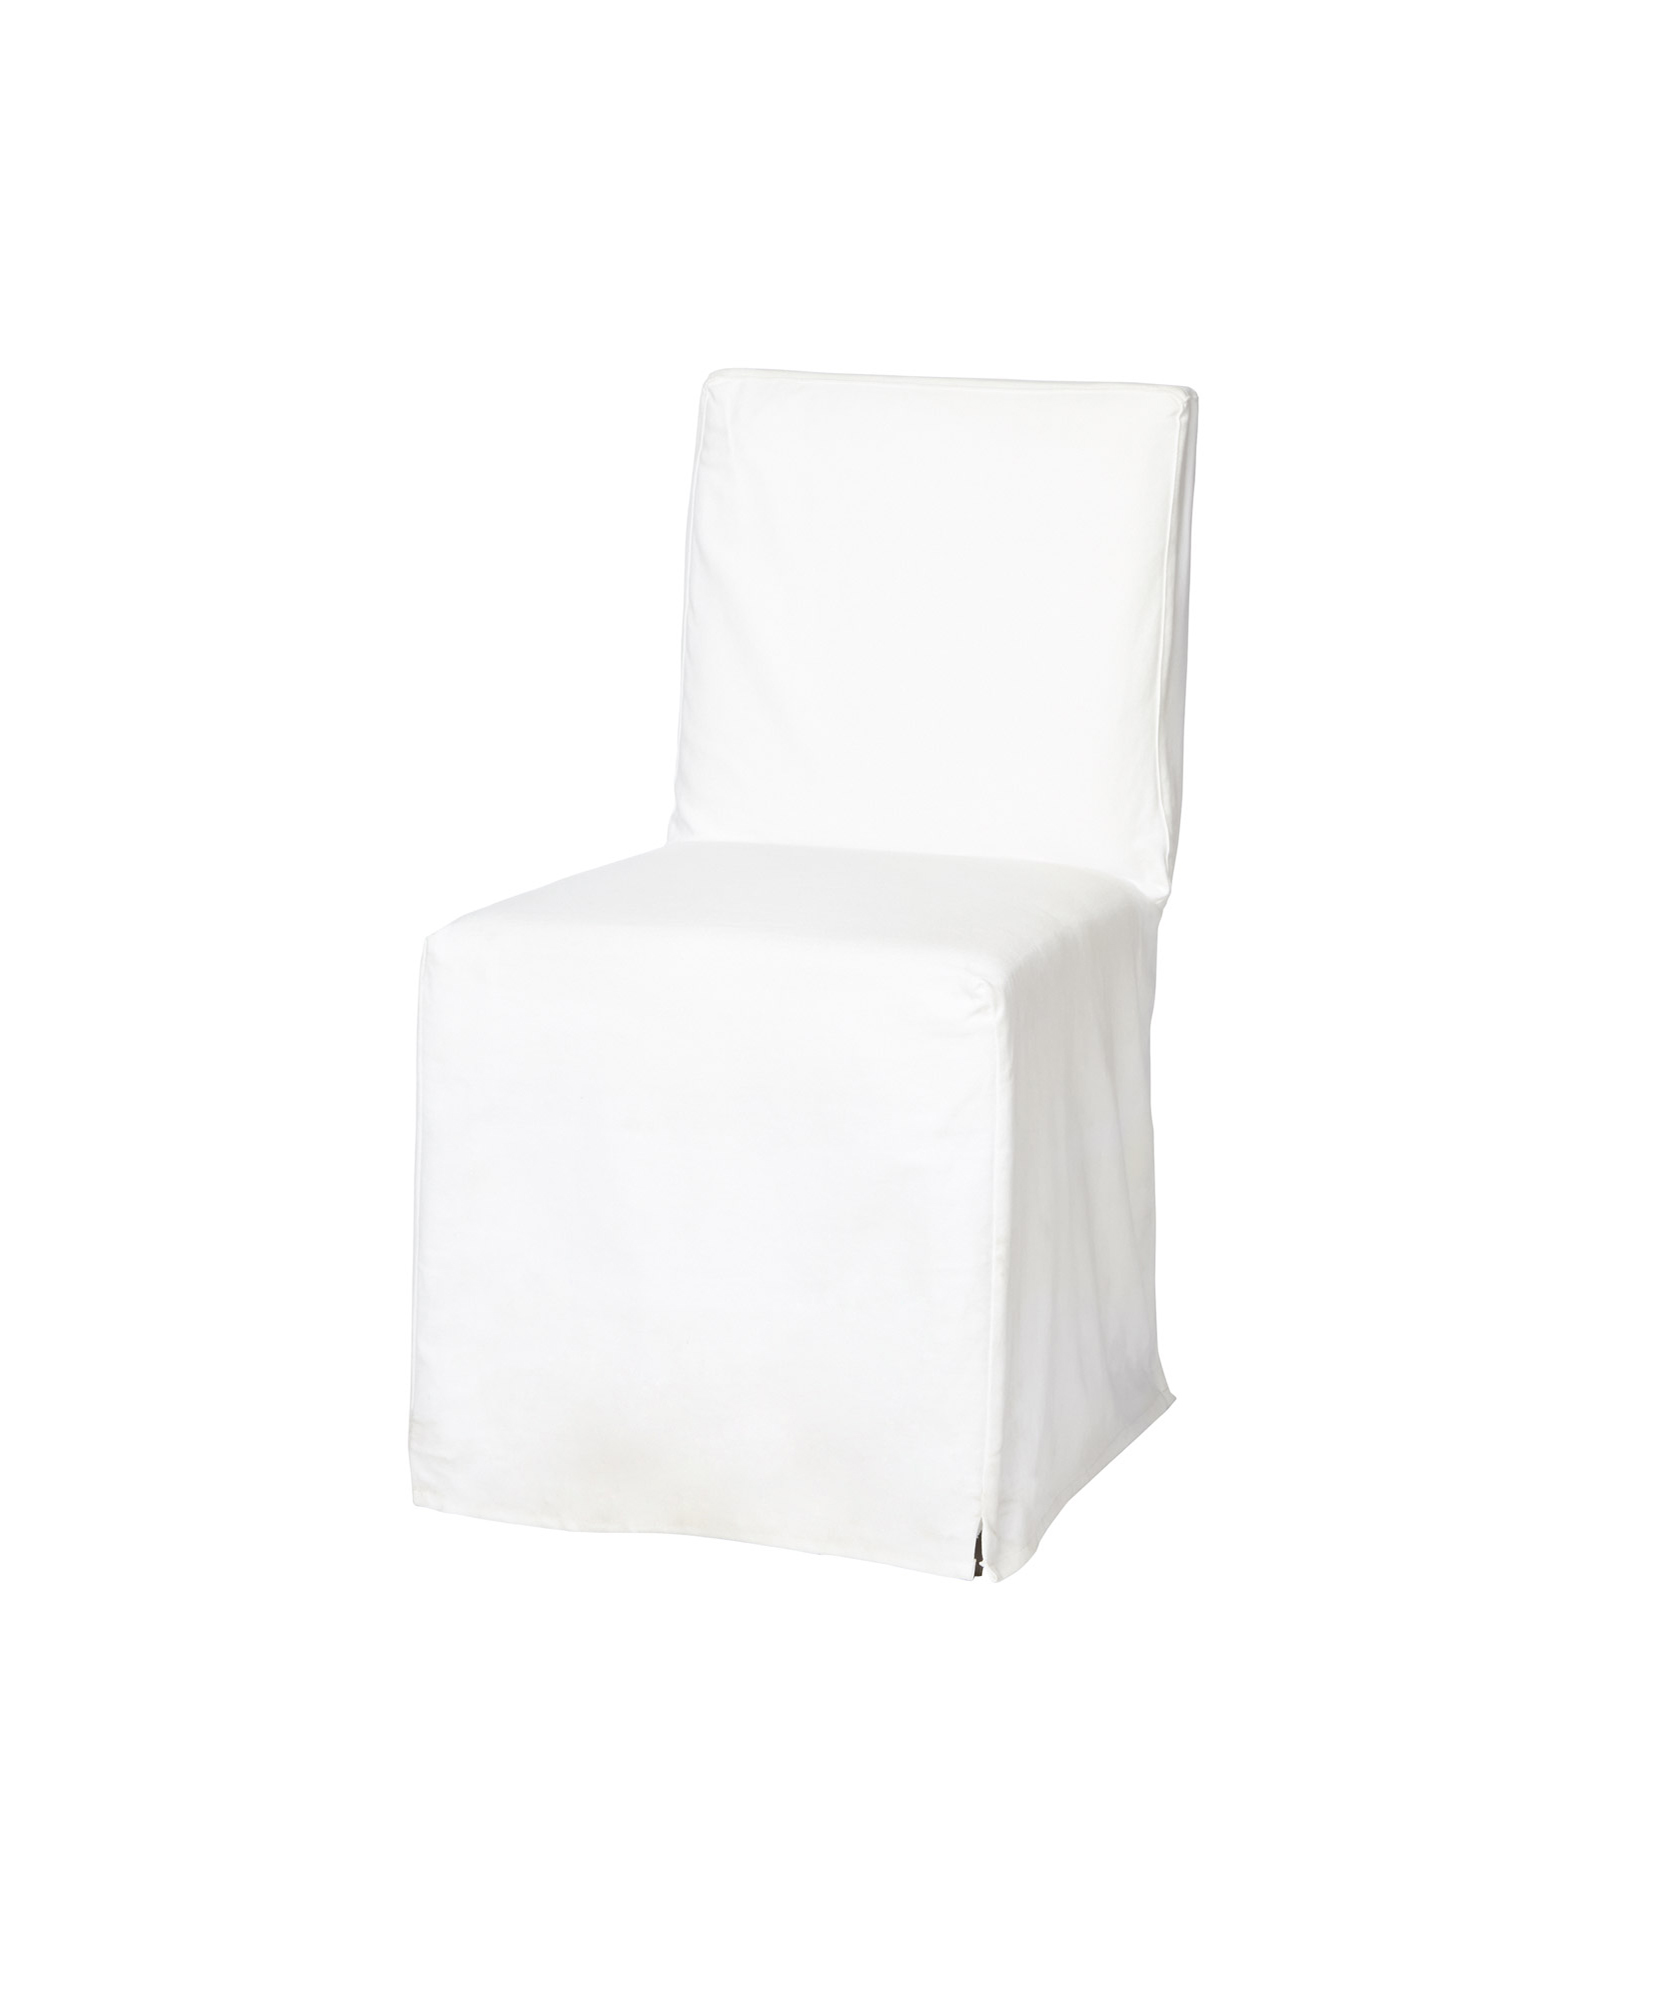 Bertoli Slipcovered Dining Chair